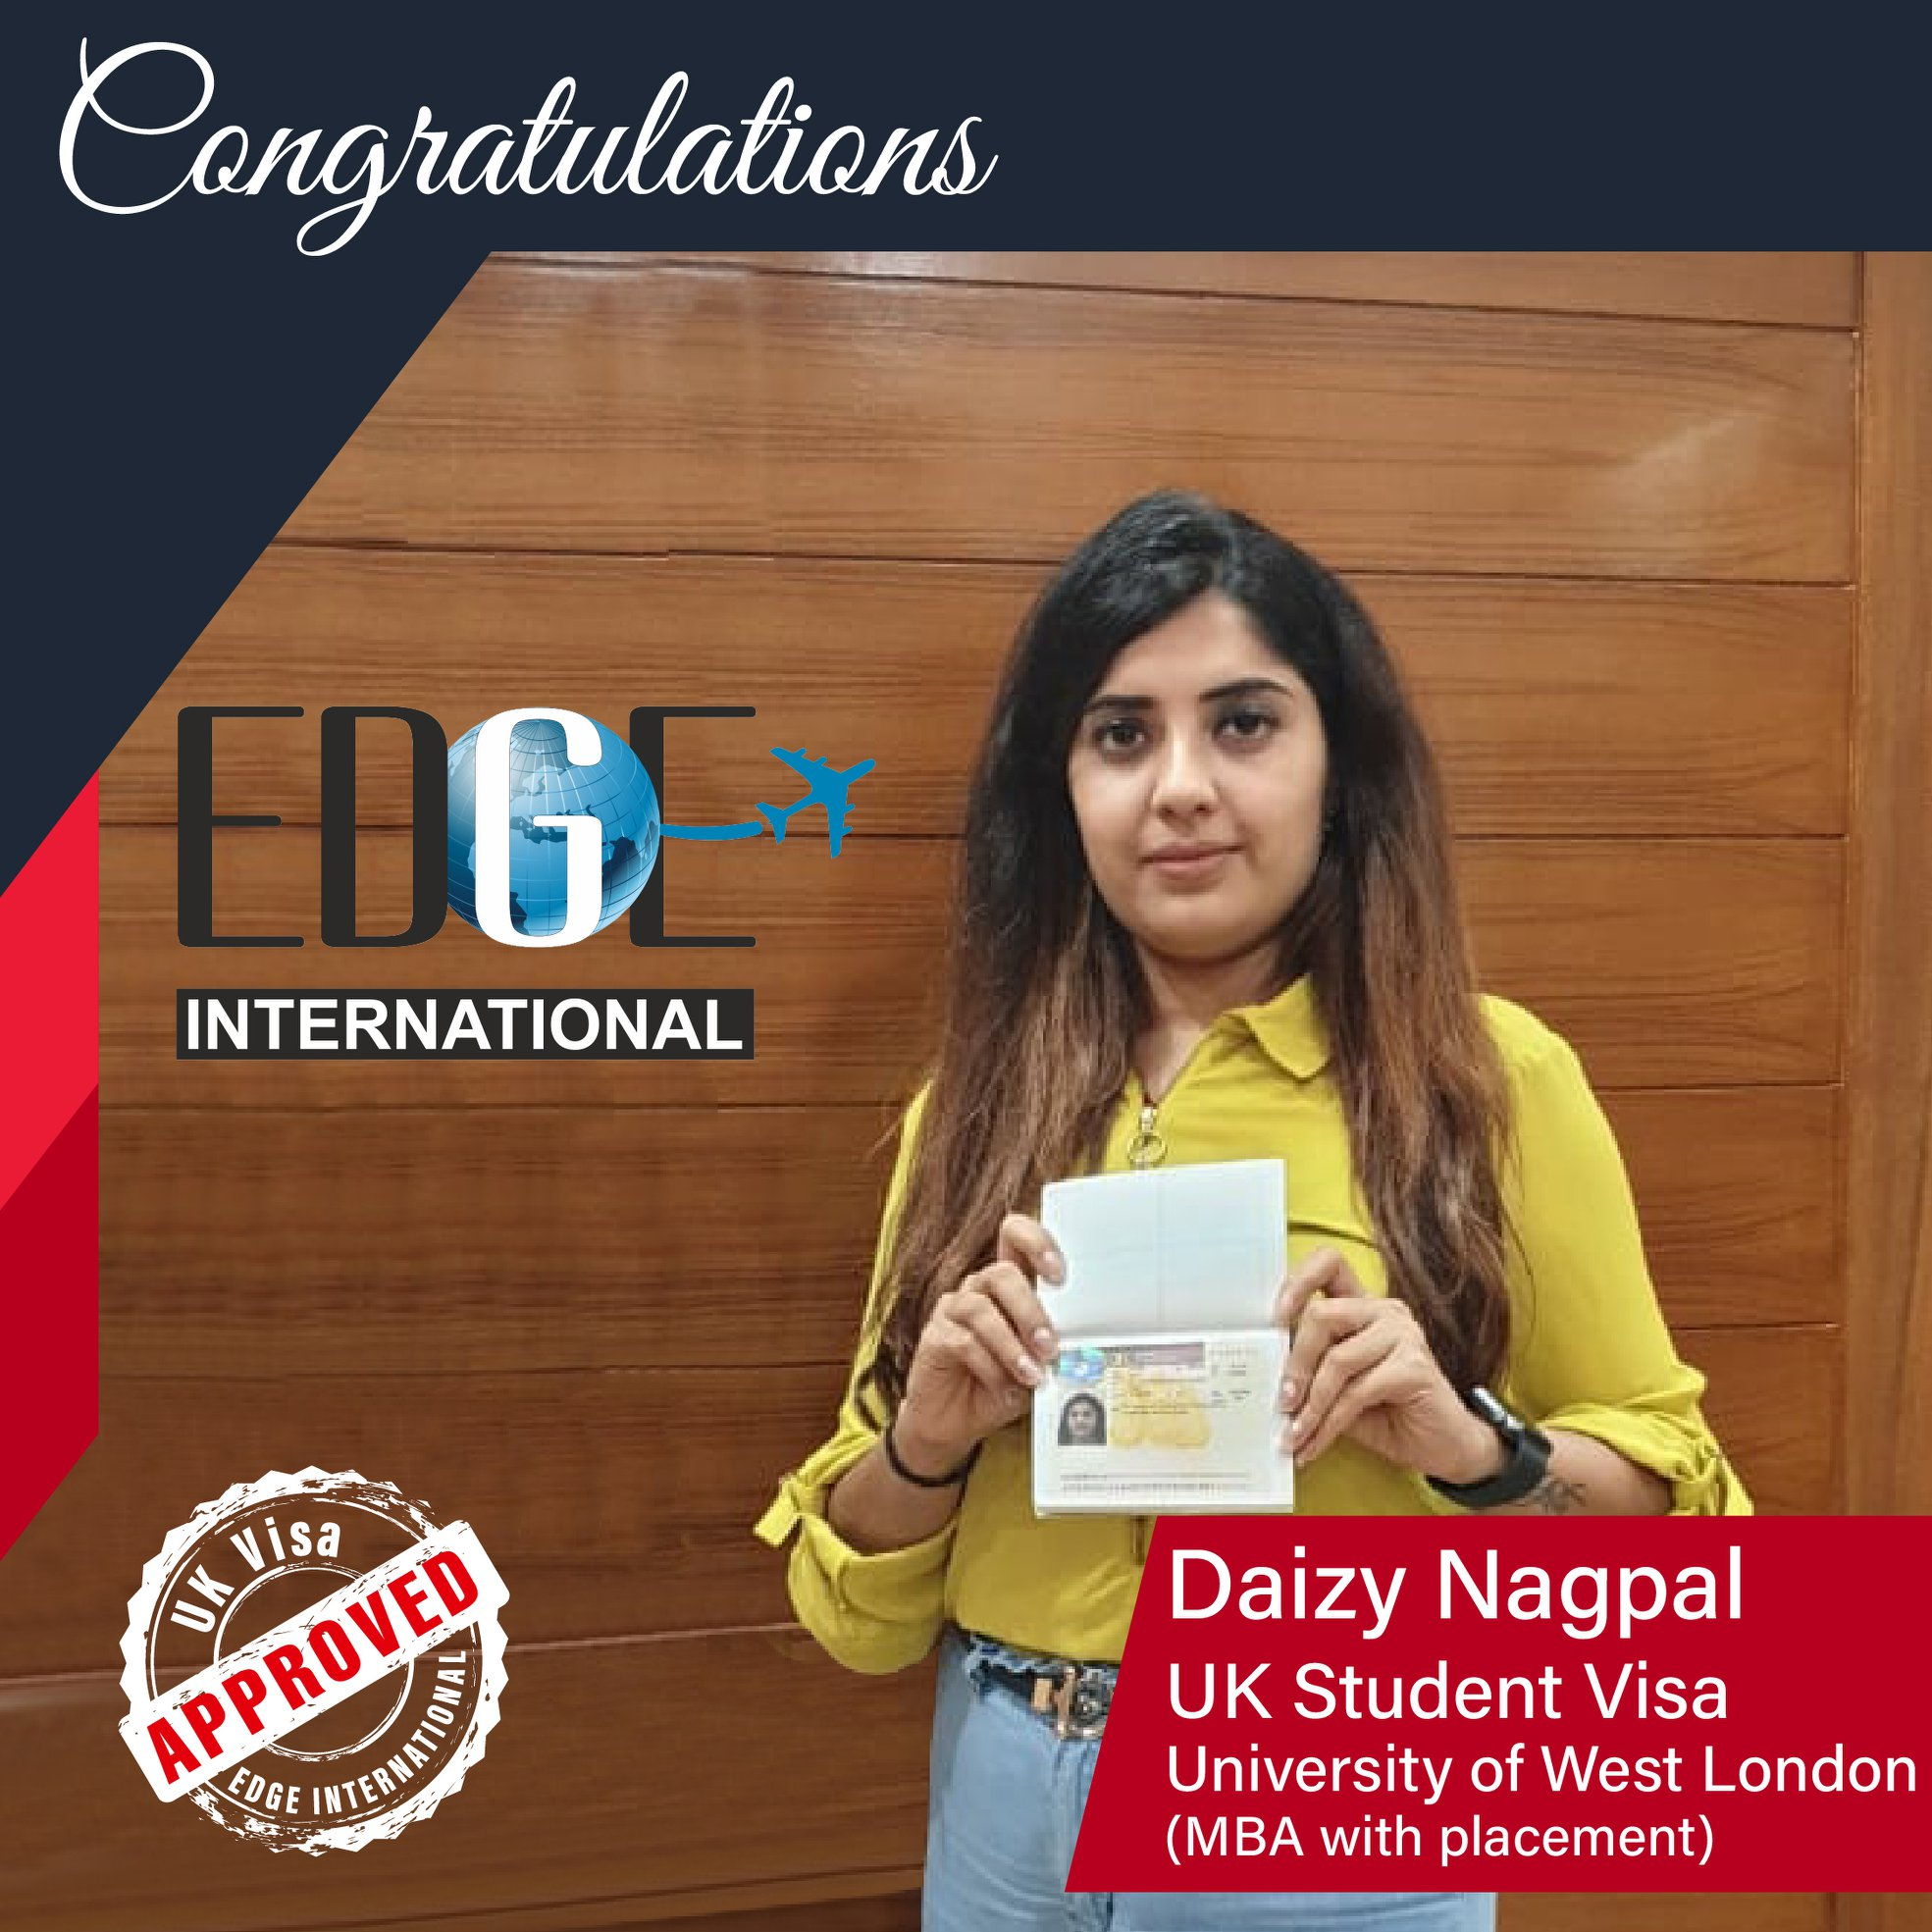 quot Congratulations 𝗗𝗮𝗶𝘇𝘆 𝗡𝗮𝗴𝗽𝗮𝗹 for Securing UKStudentVisa at